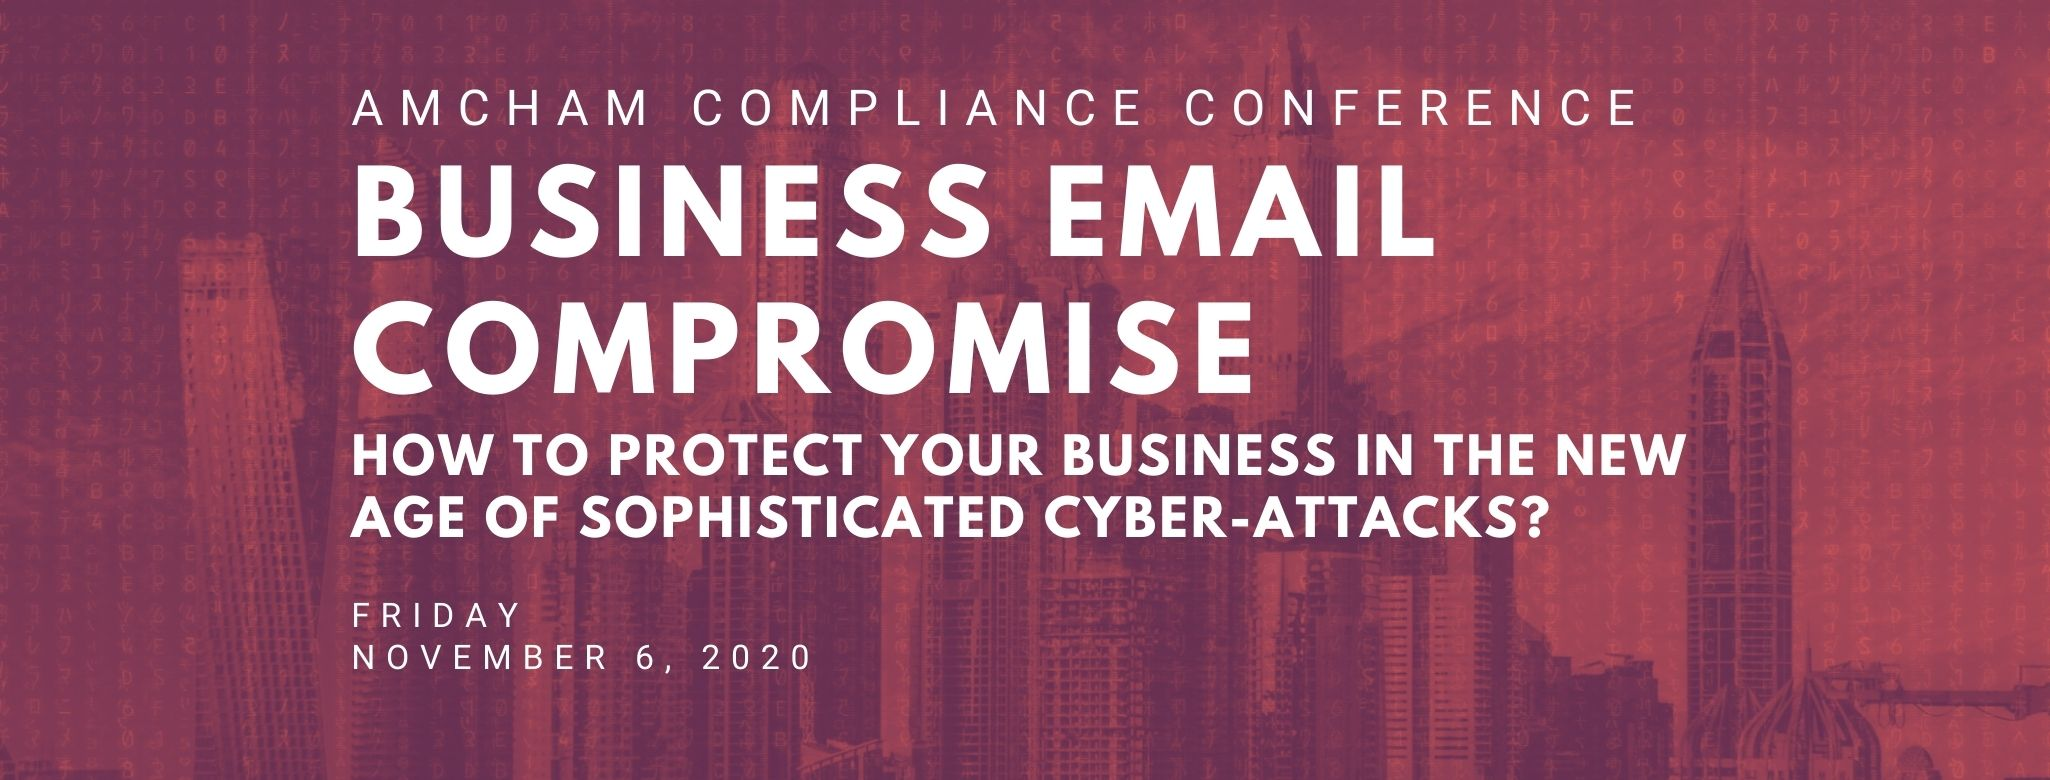 AmCham Conference: How To Protect Your Business From Cyber-Attacks?,